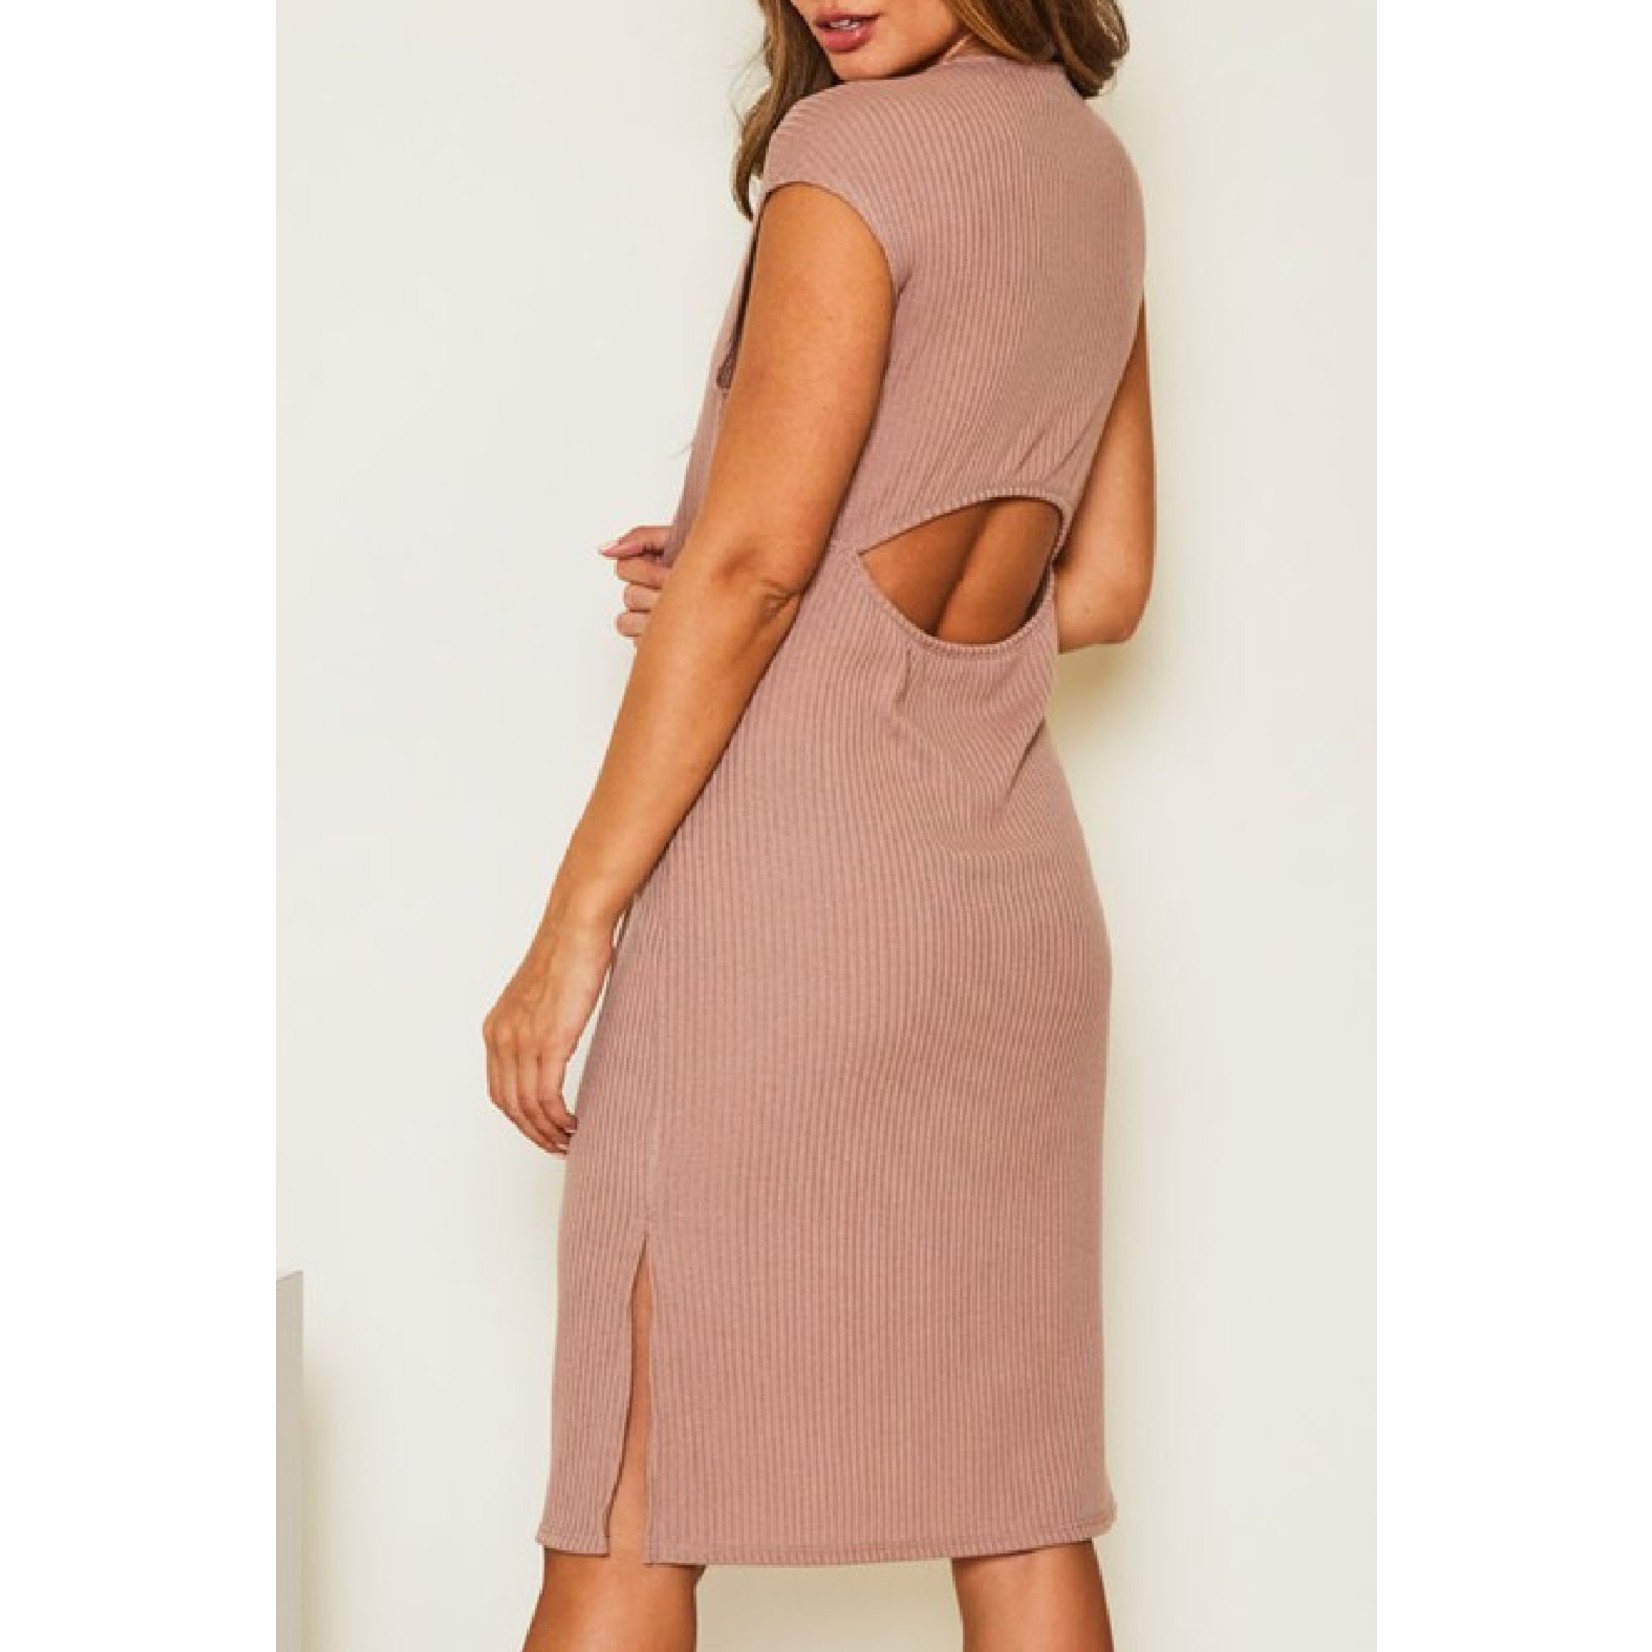 Fantastic Fawn Open Back Ribbed dress